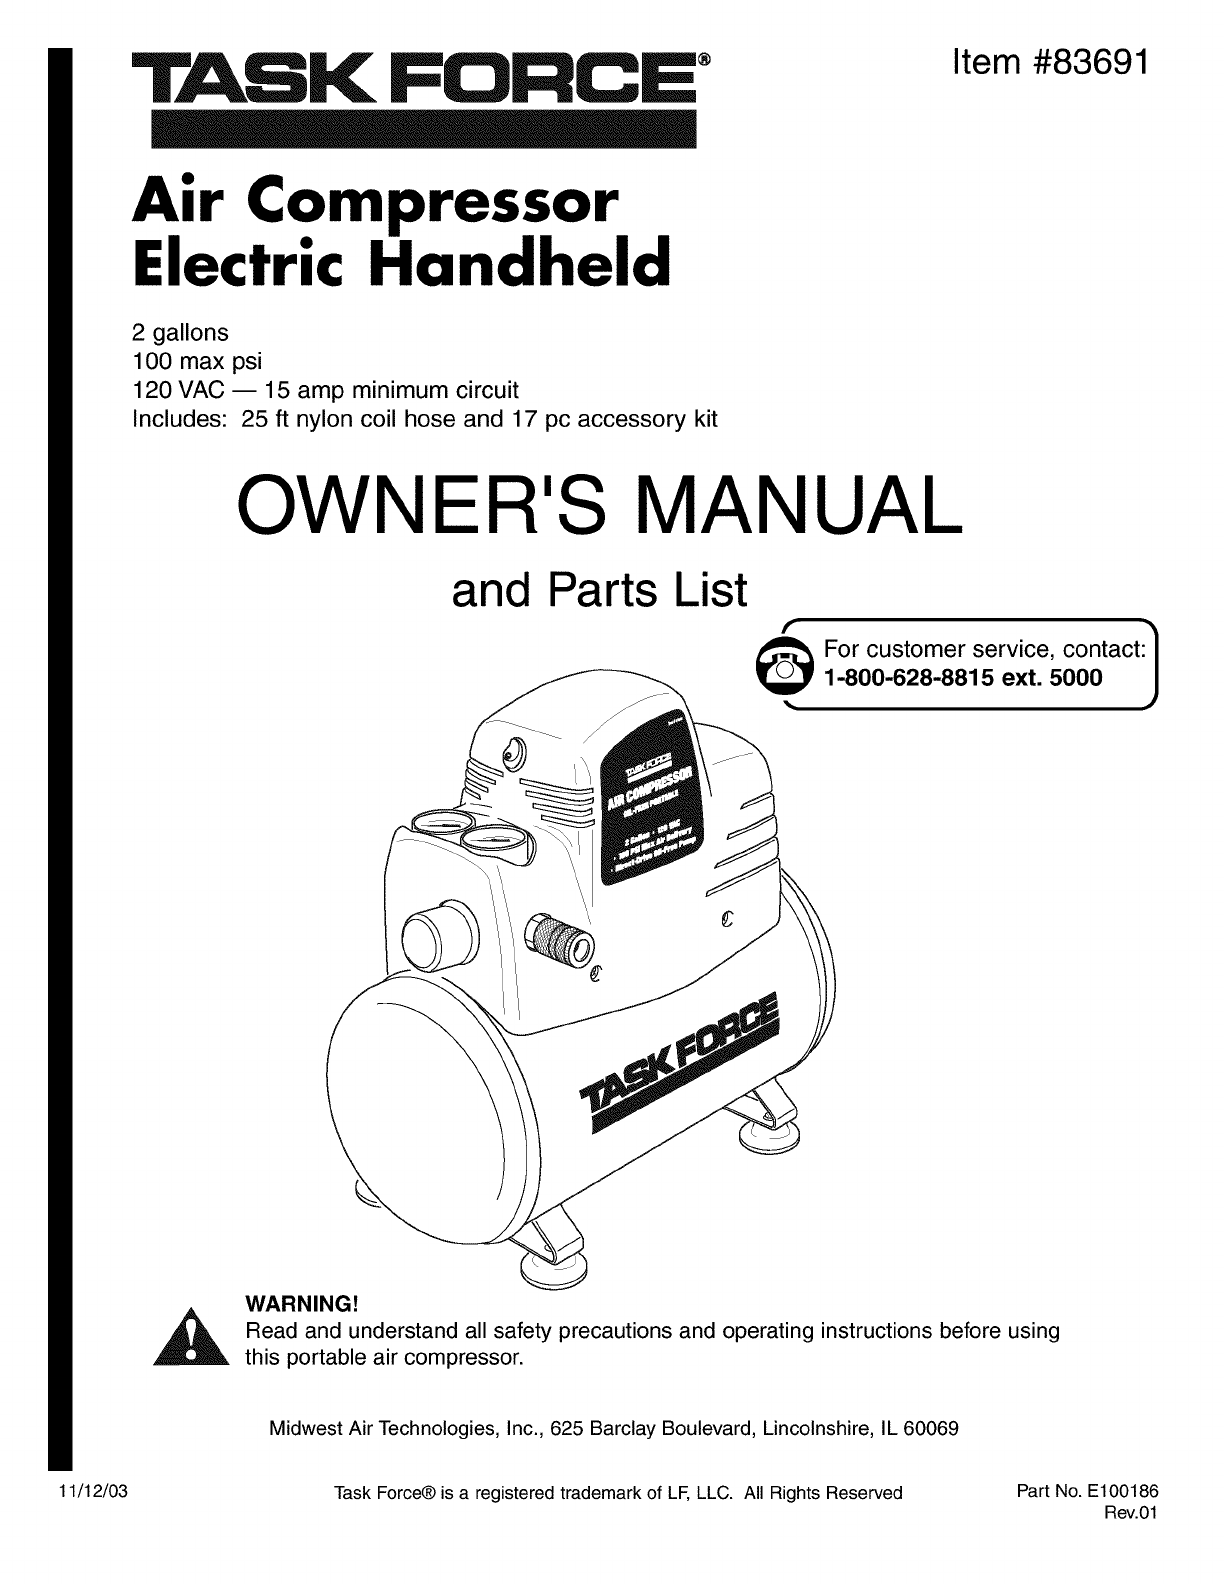 Task Force, a Lowe's brand Air Compressor 83691 User Guide